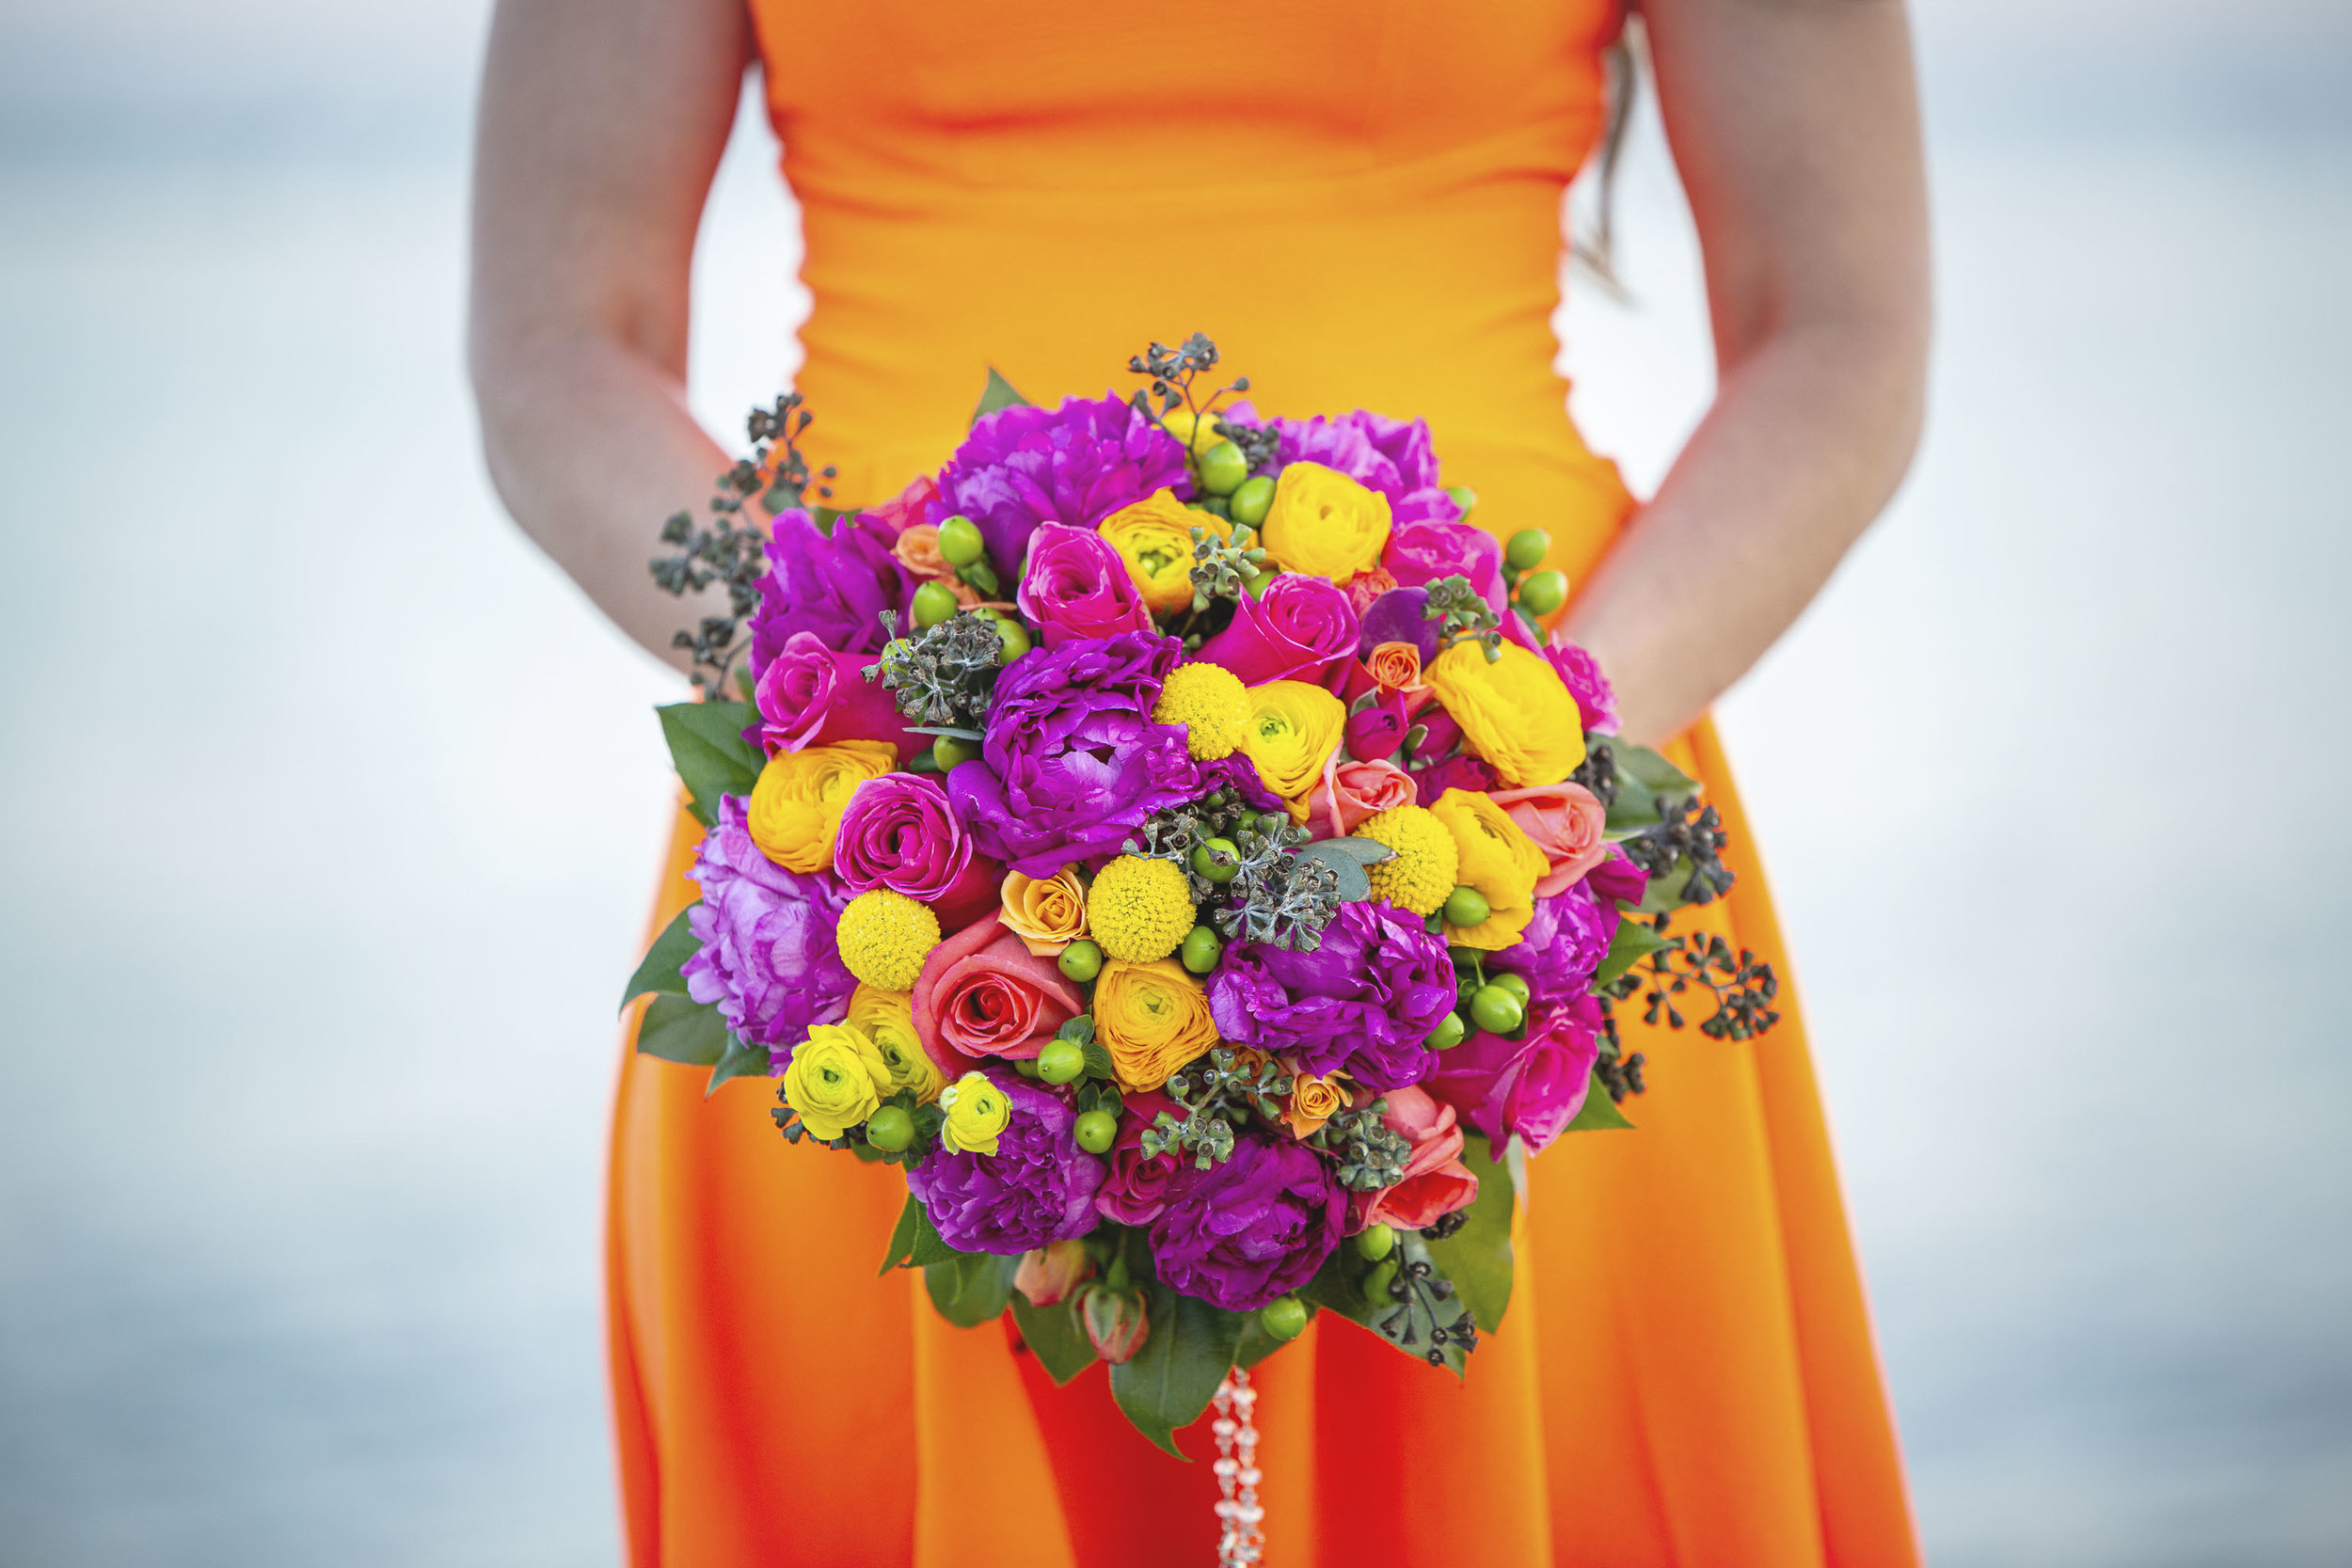 Bright bridal bouquet with orange dress for after wedding photos